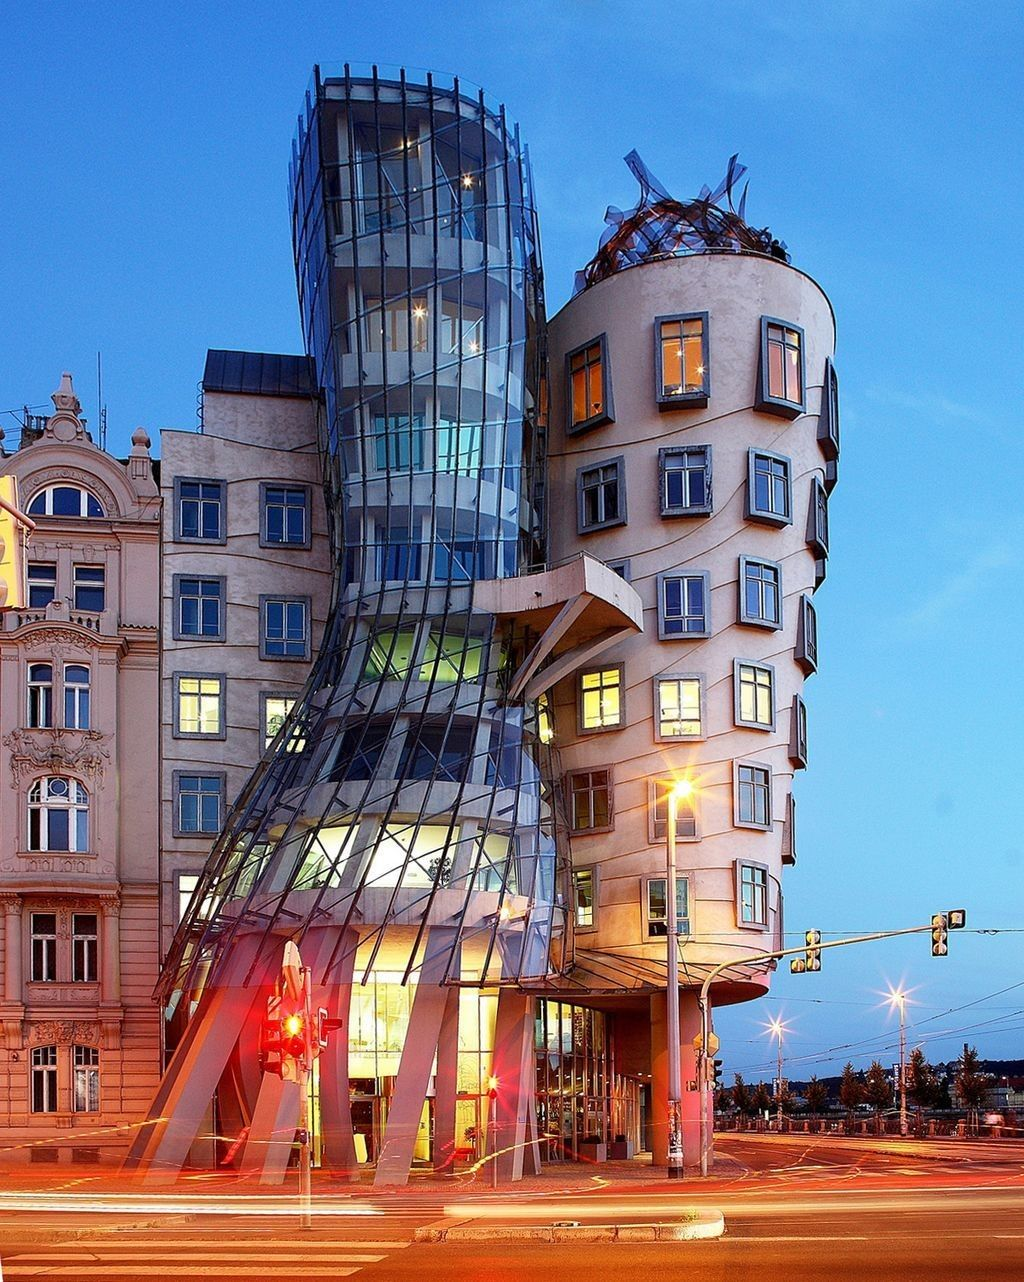 Dwell - 13 Iconic Buildings Designed by Frank Gehry